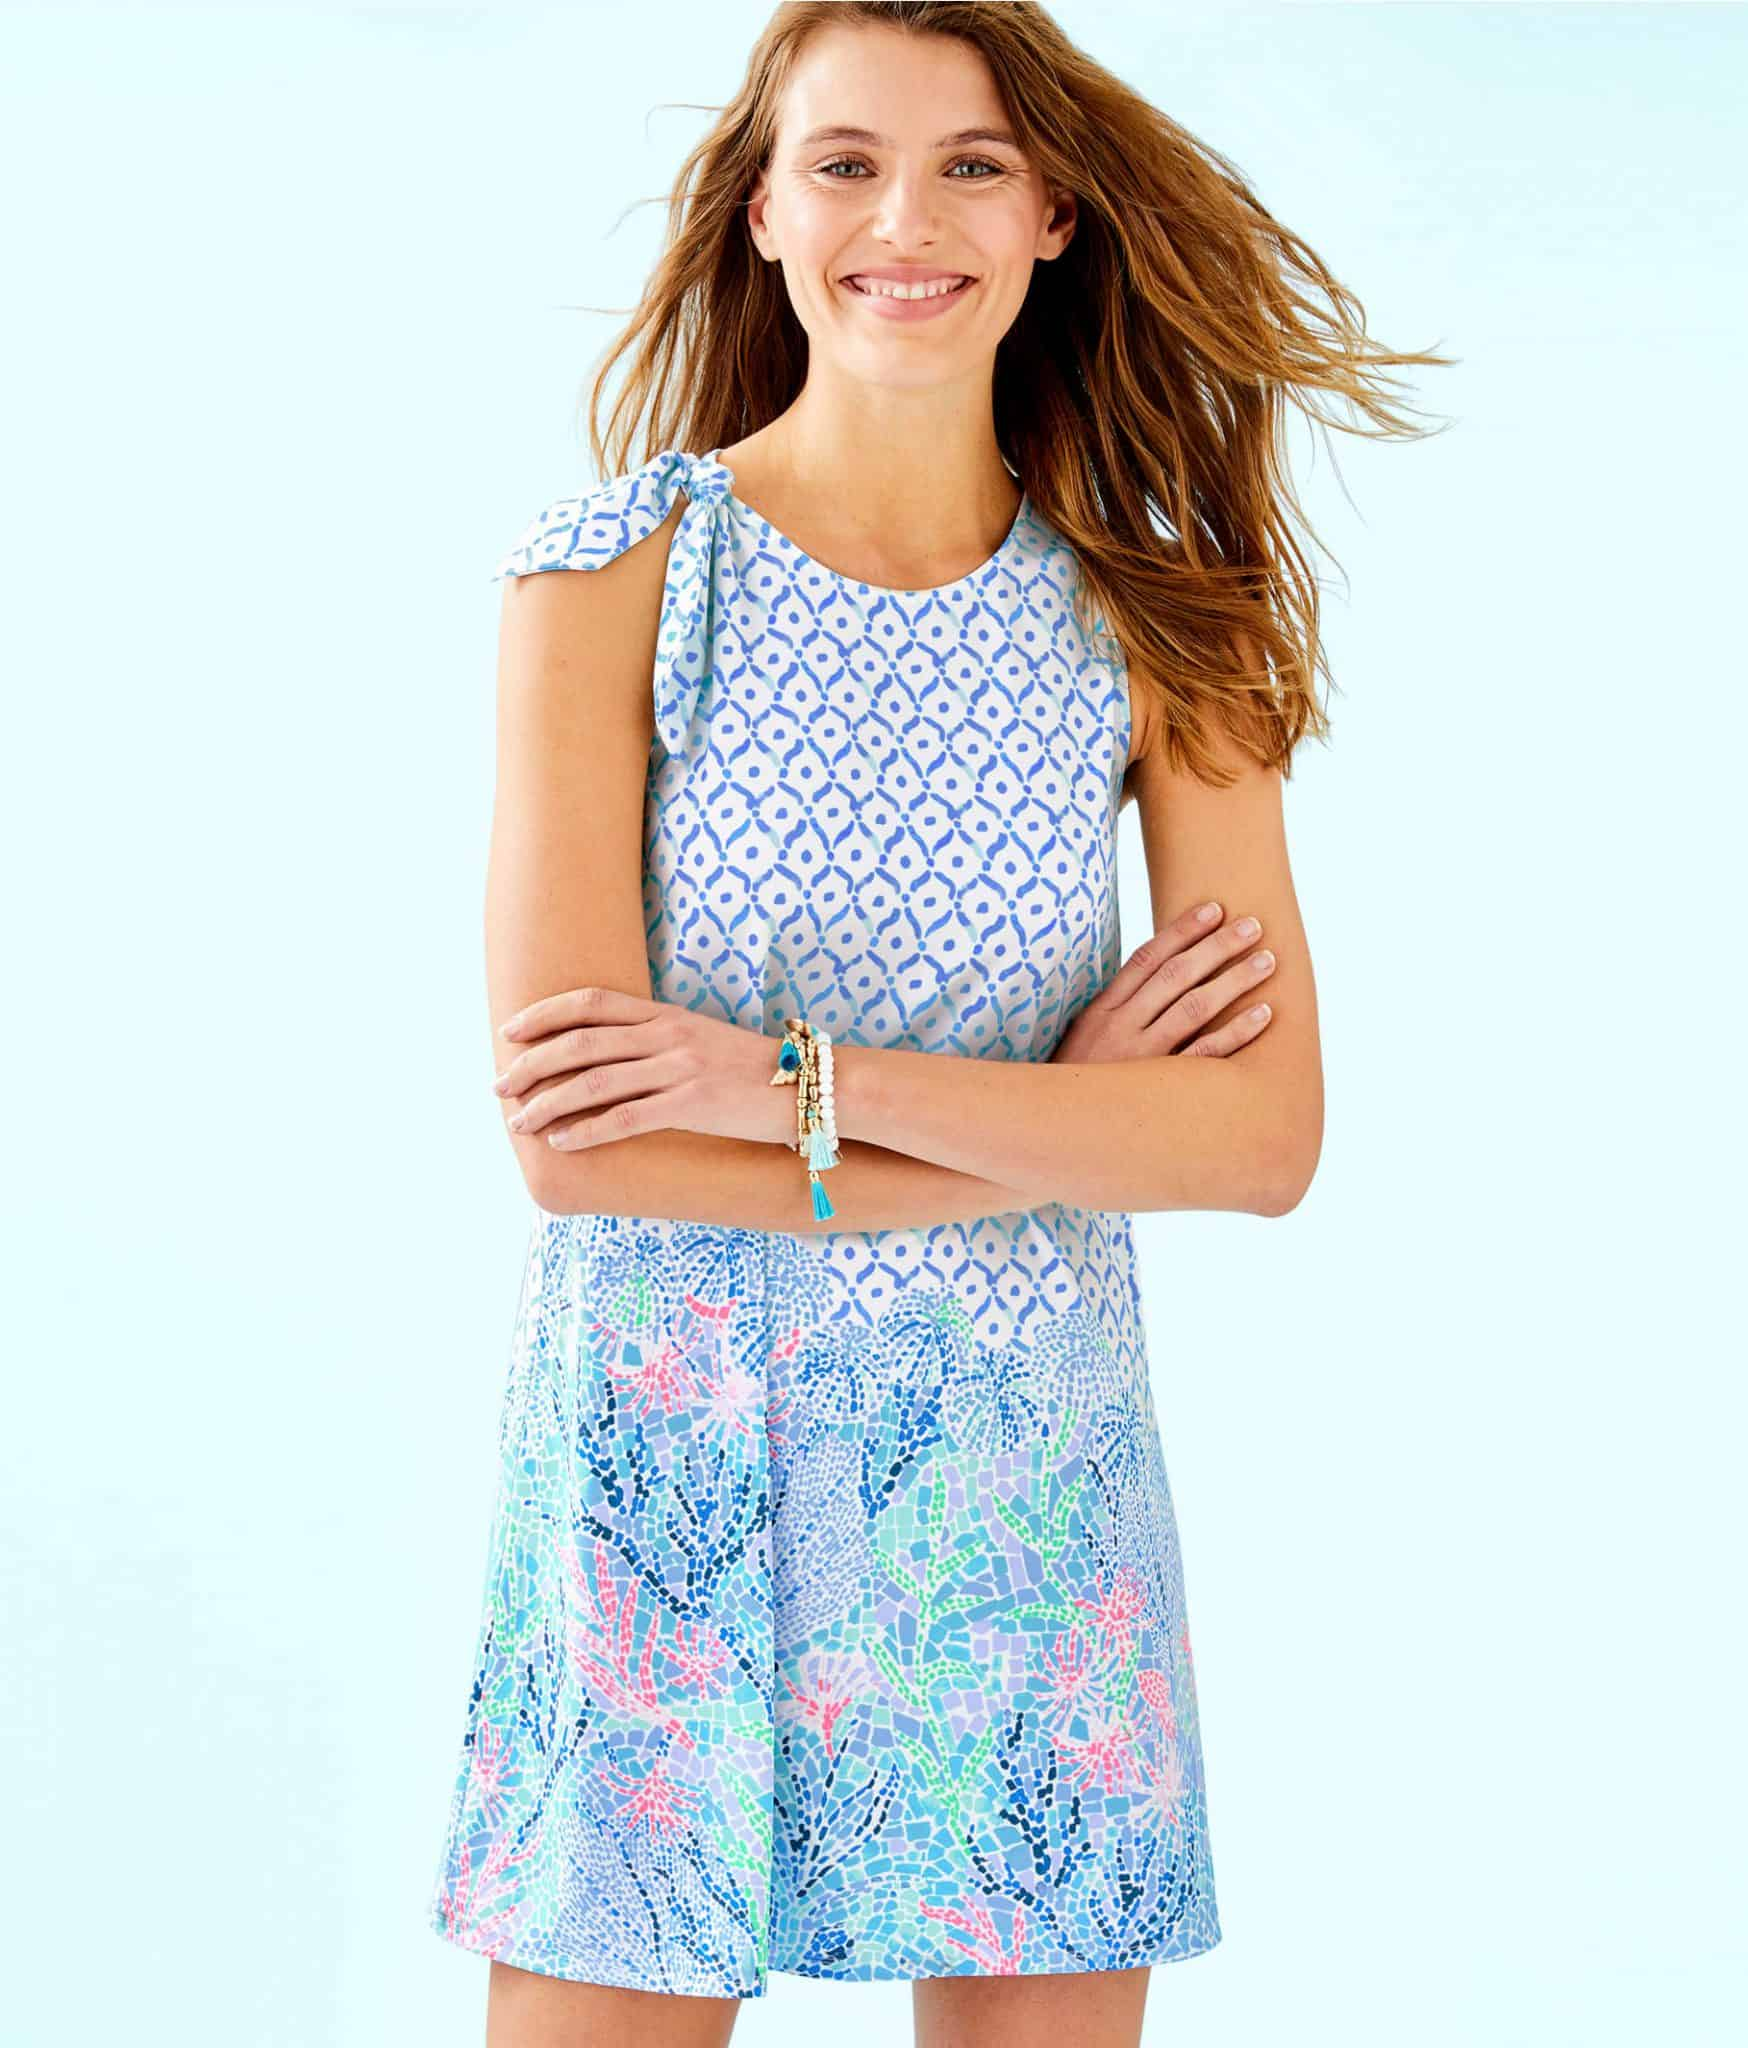 Lilly Pulitzer After Party Sale favorites featured by top US fashion blog, Glamorous Versatility: image of Lilly Pulitzer Luella swing dress